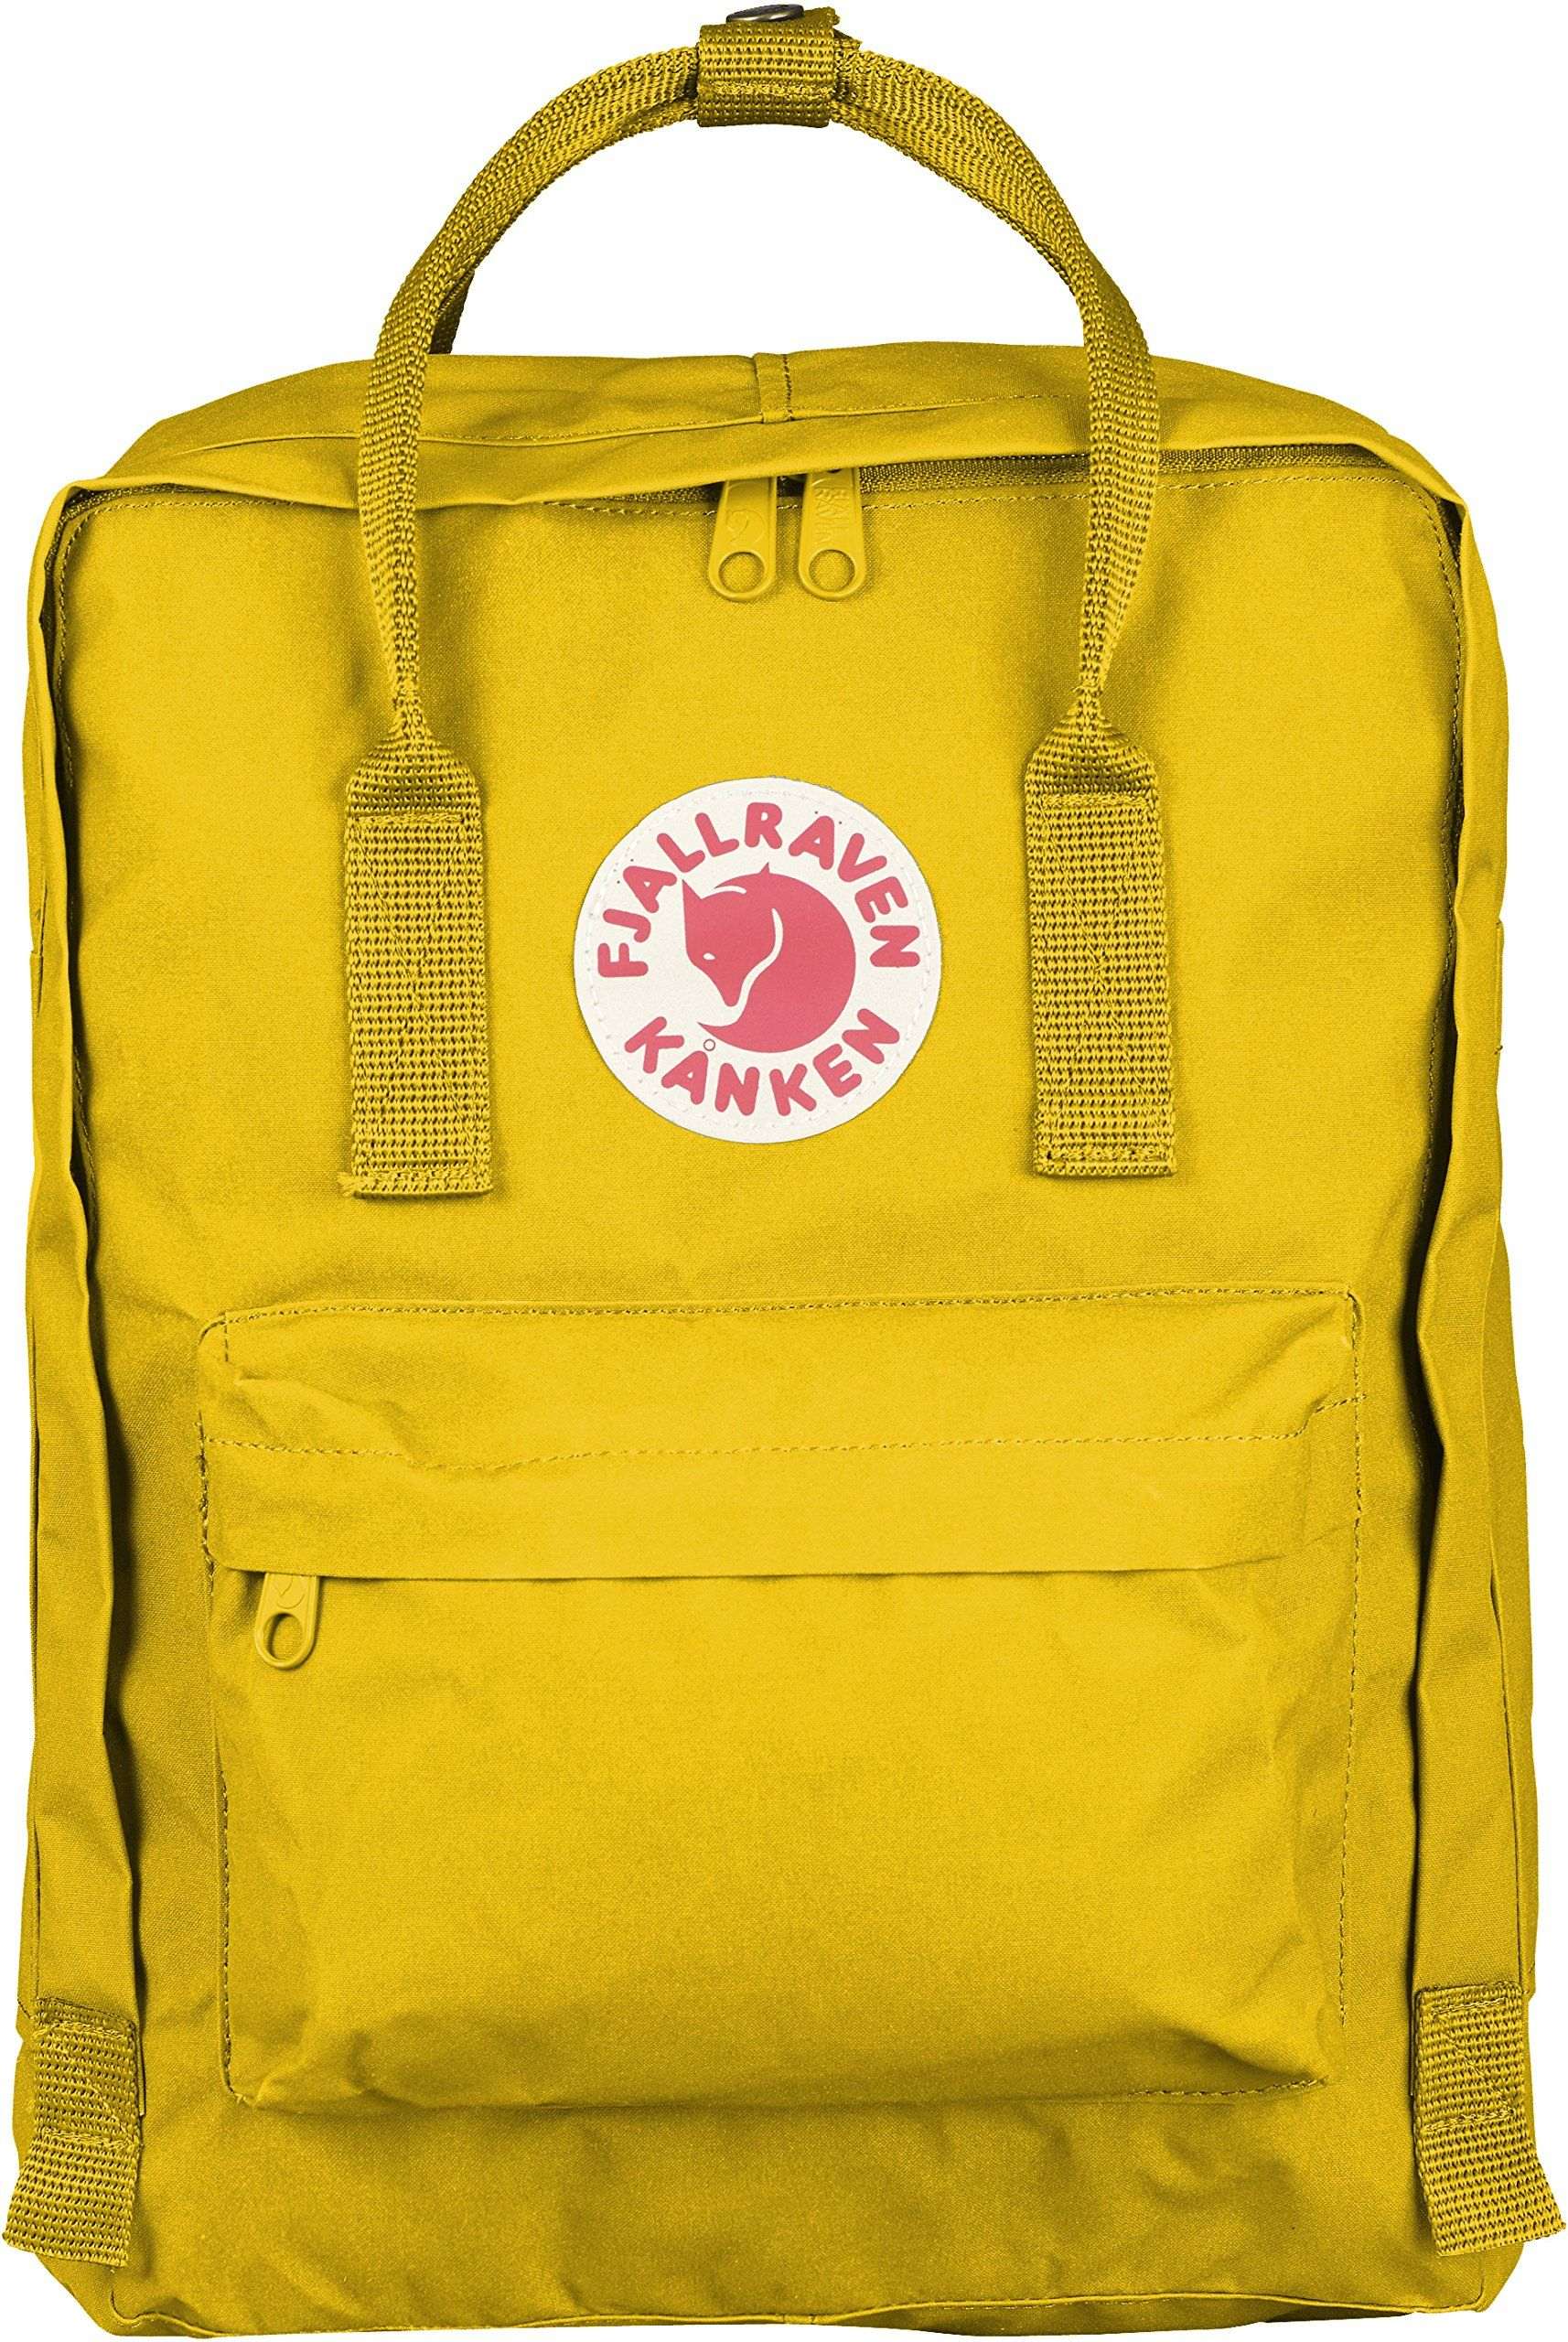 nuovo concetto 41b03 a7951 Amazon.com: Fjallraven Kanken Backpack,15-Inch,Air Blue ...